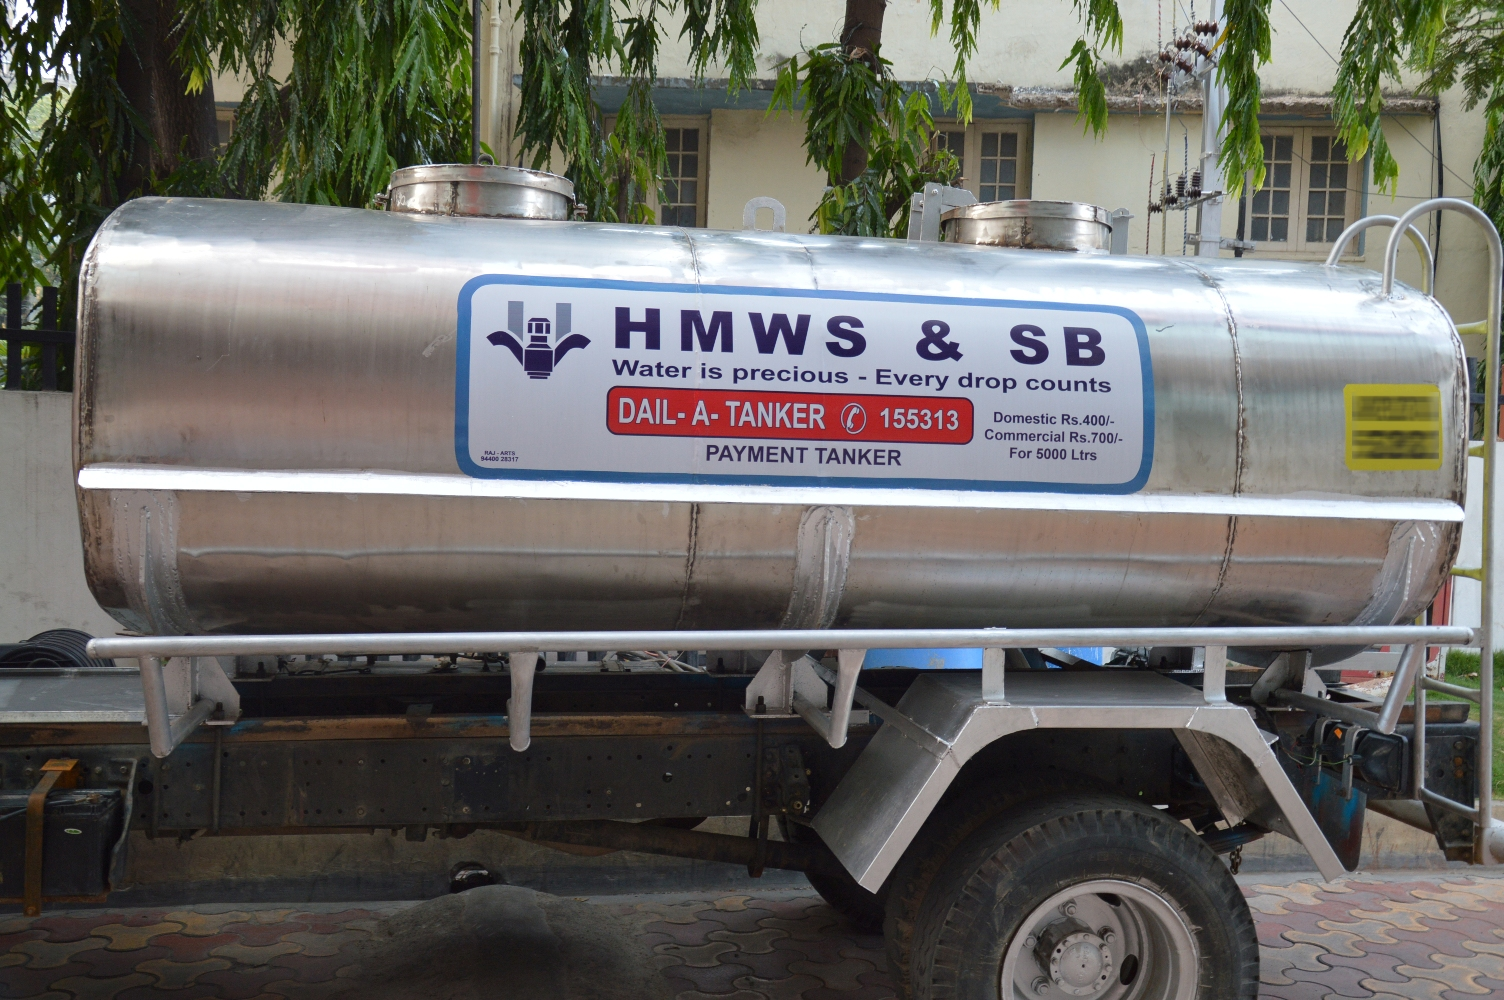 Septic tankers told to register with HMWSSB